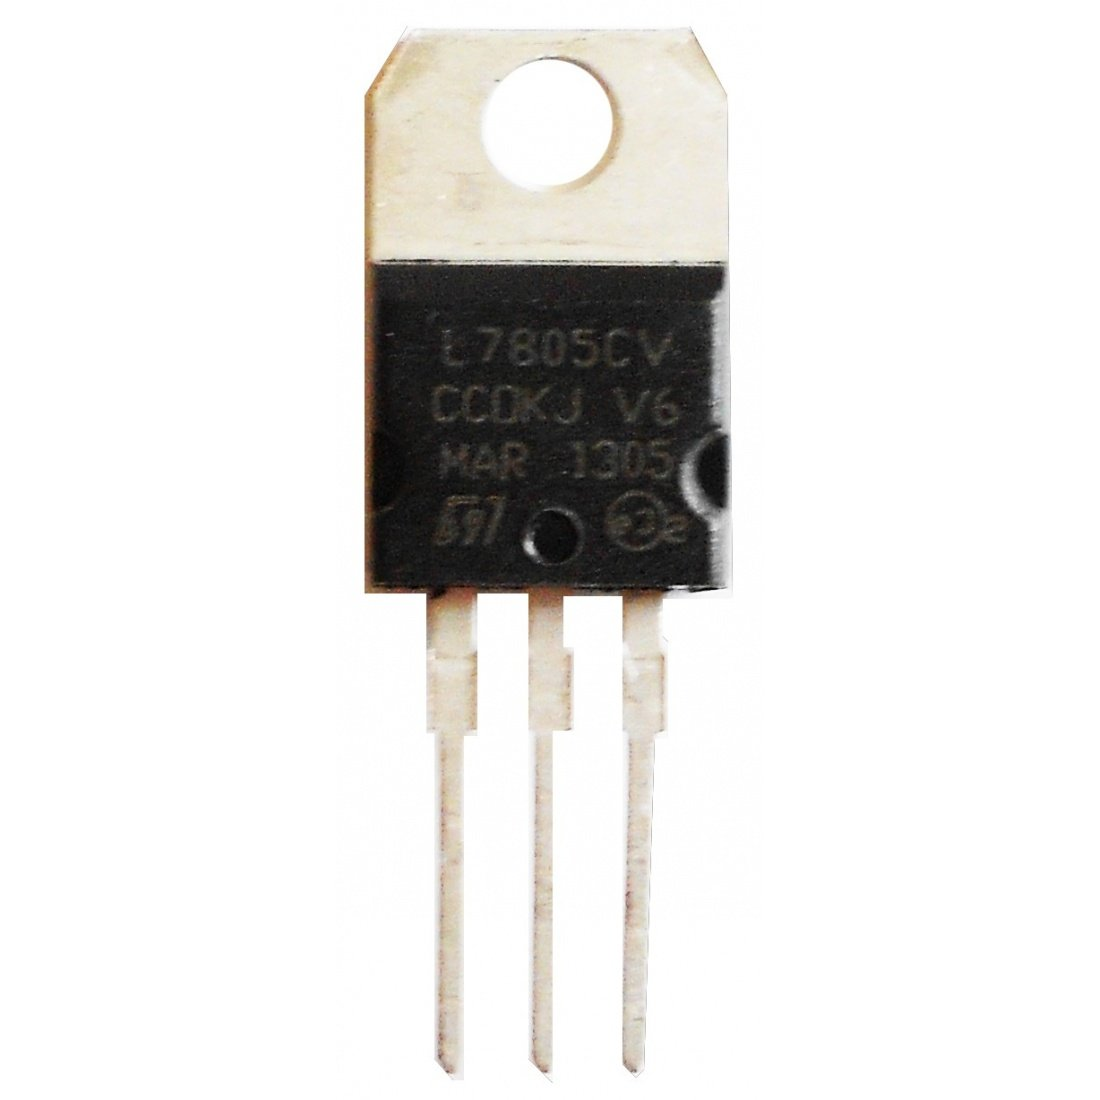 Ic 723 Voltage Regulators